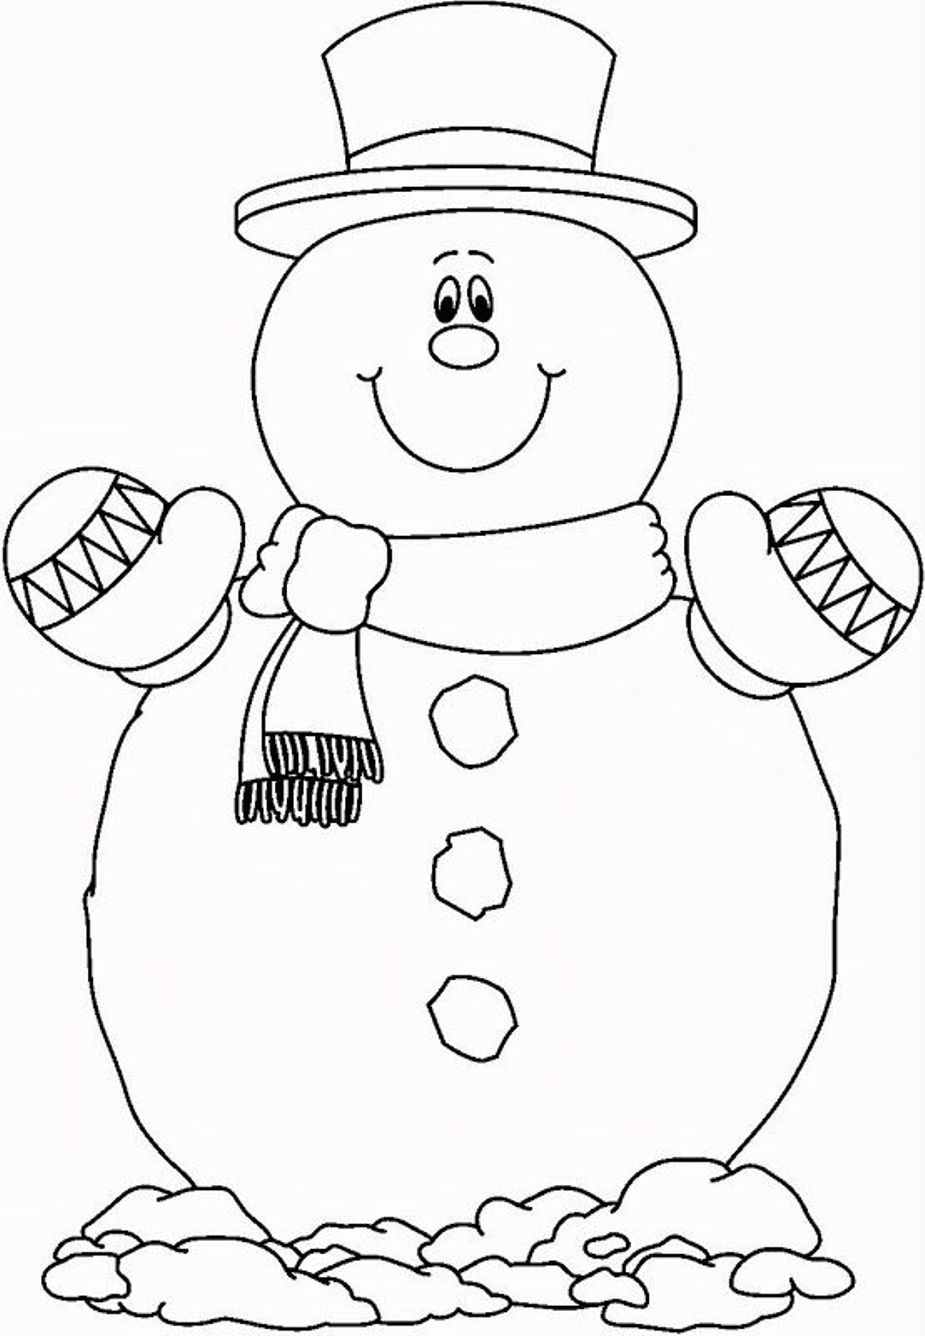 snowman coloring page snowman coloring pages to download and print for free snowman page coloring